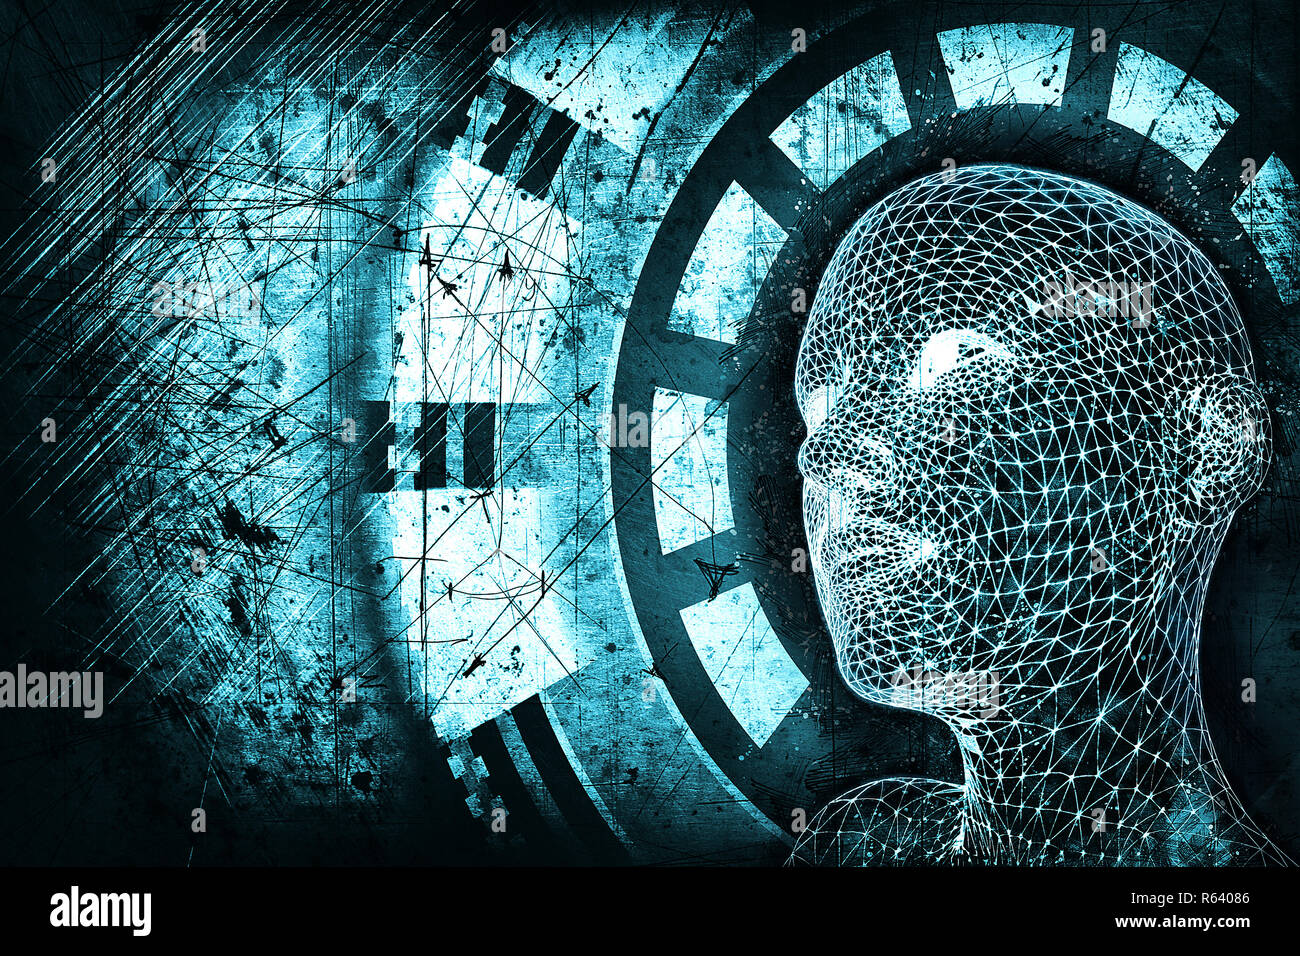 Abstract Blue Digital Human Head On Dark Grunge Background Robotics